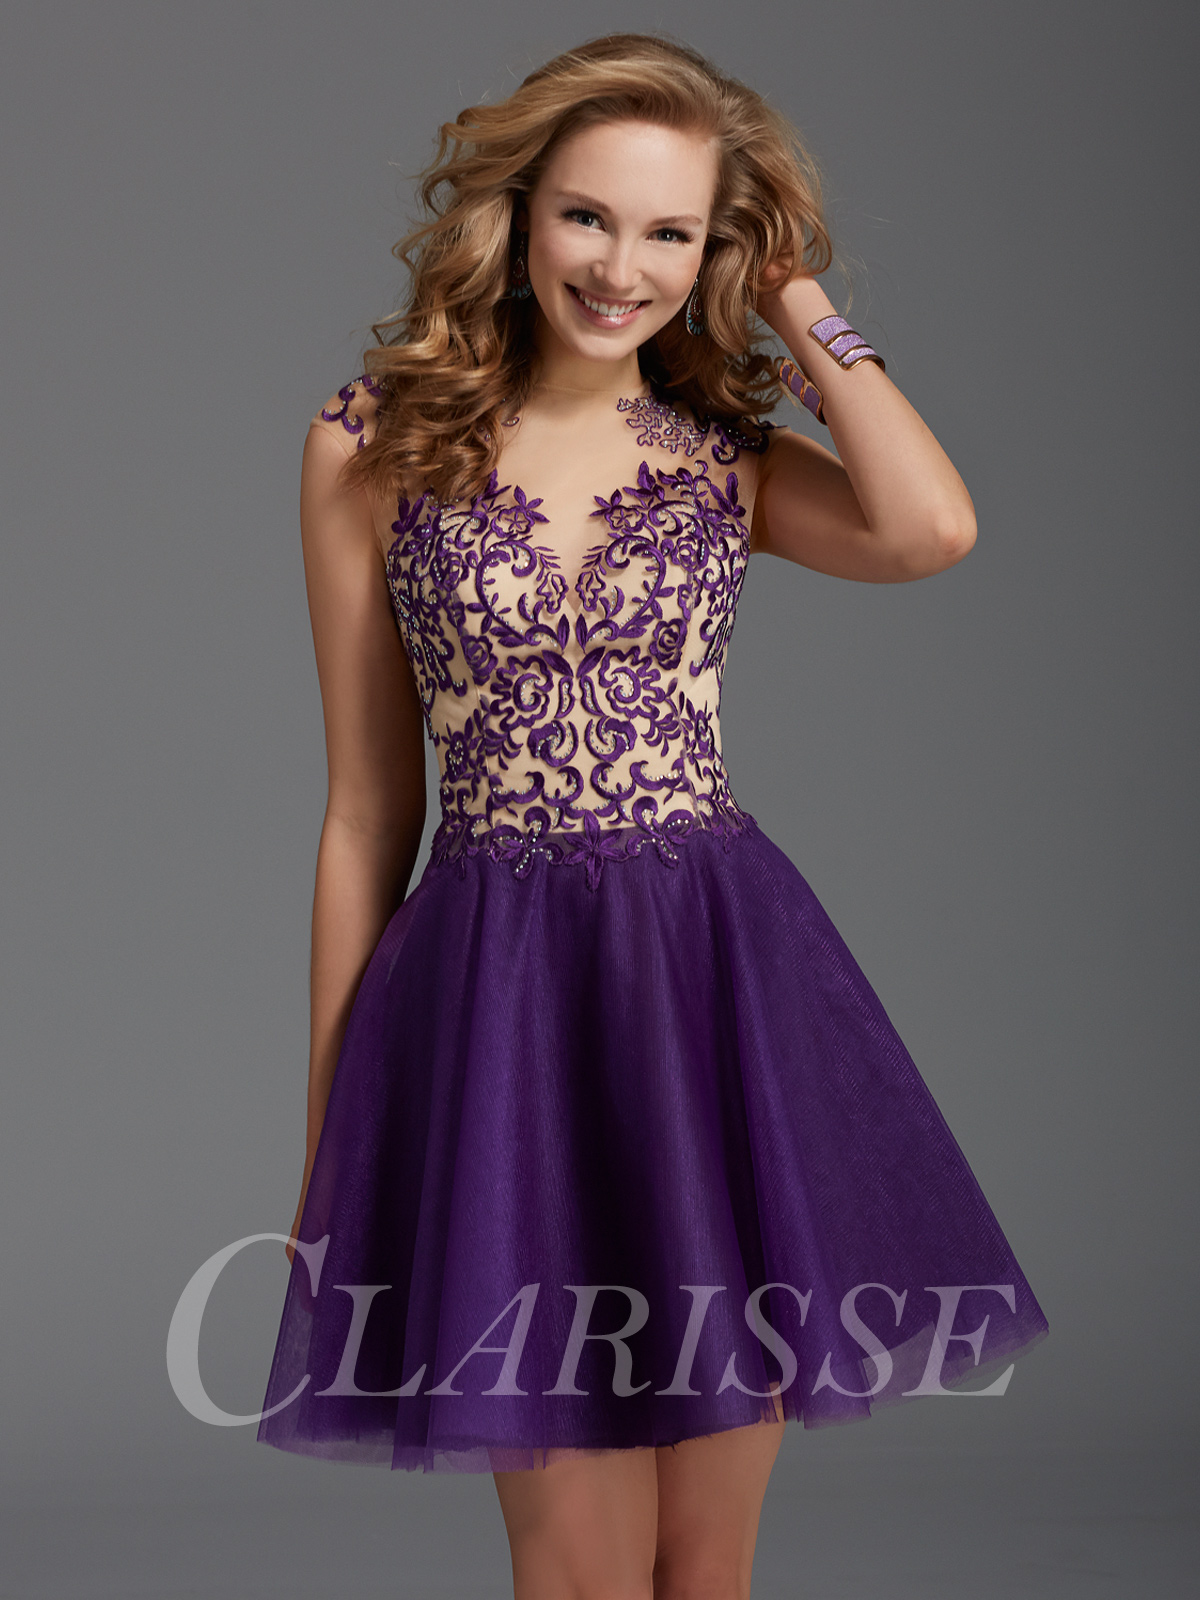 Purple Prom Dresses - Purple Gowns Long and Short | Promgirl.net